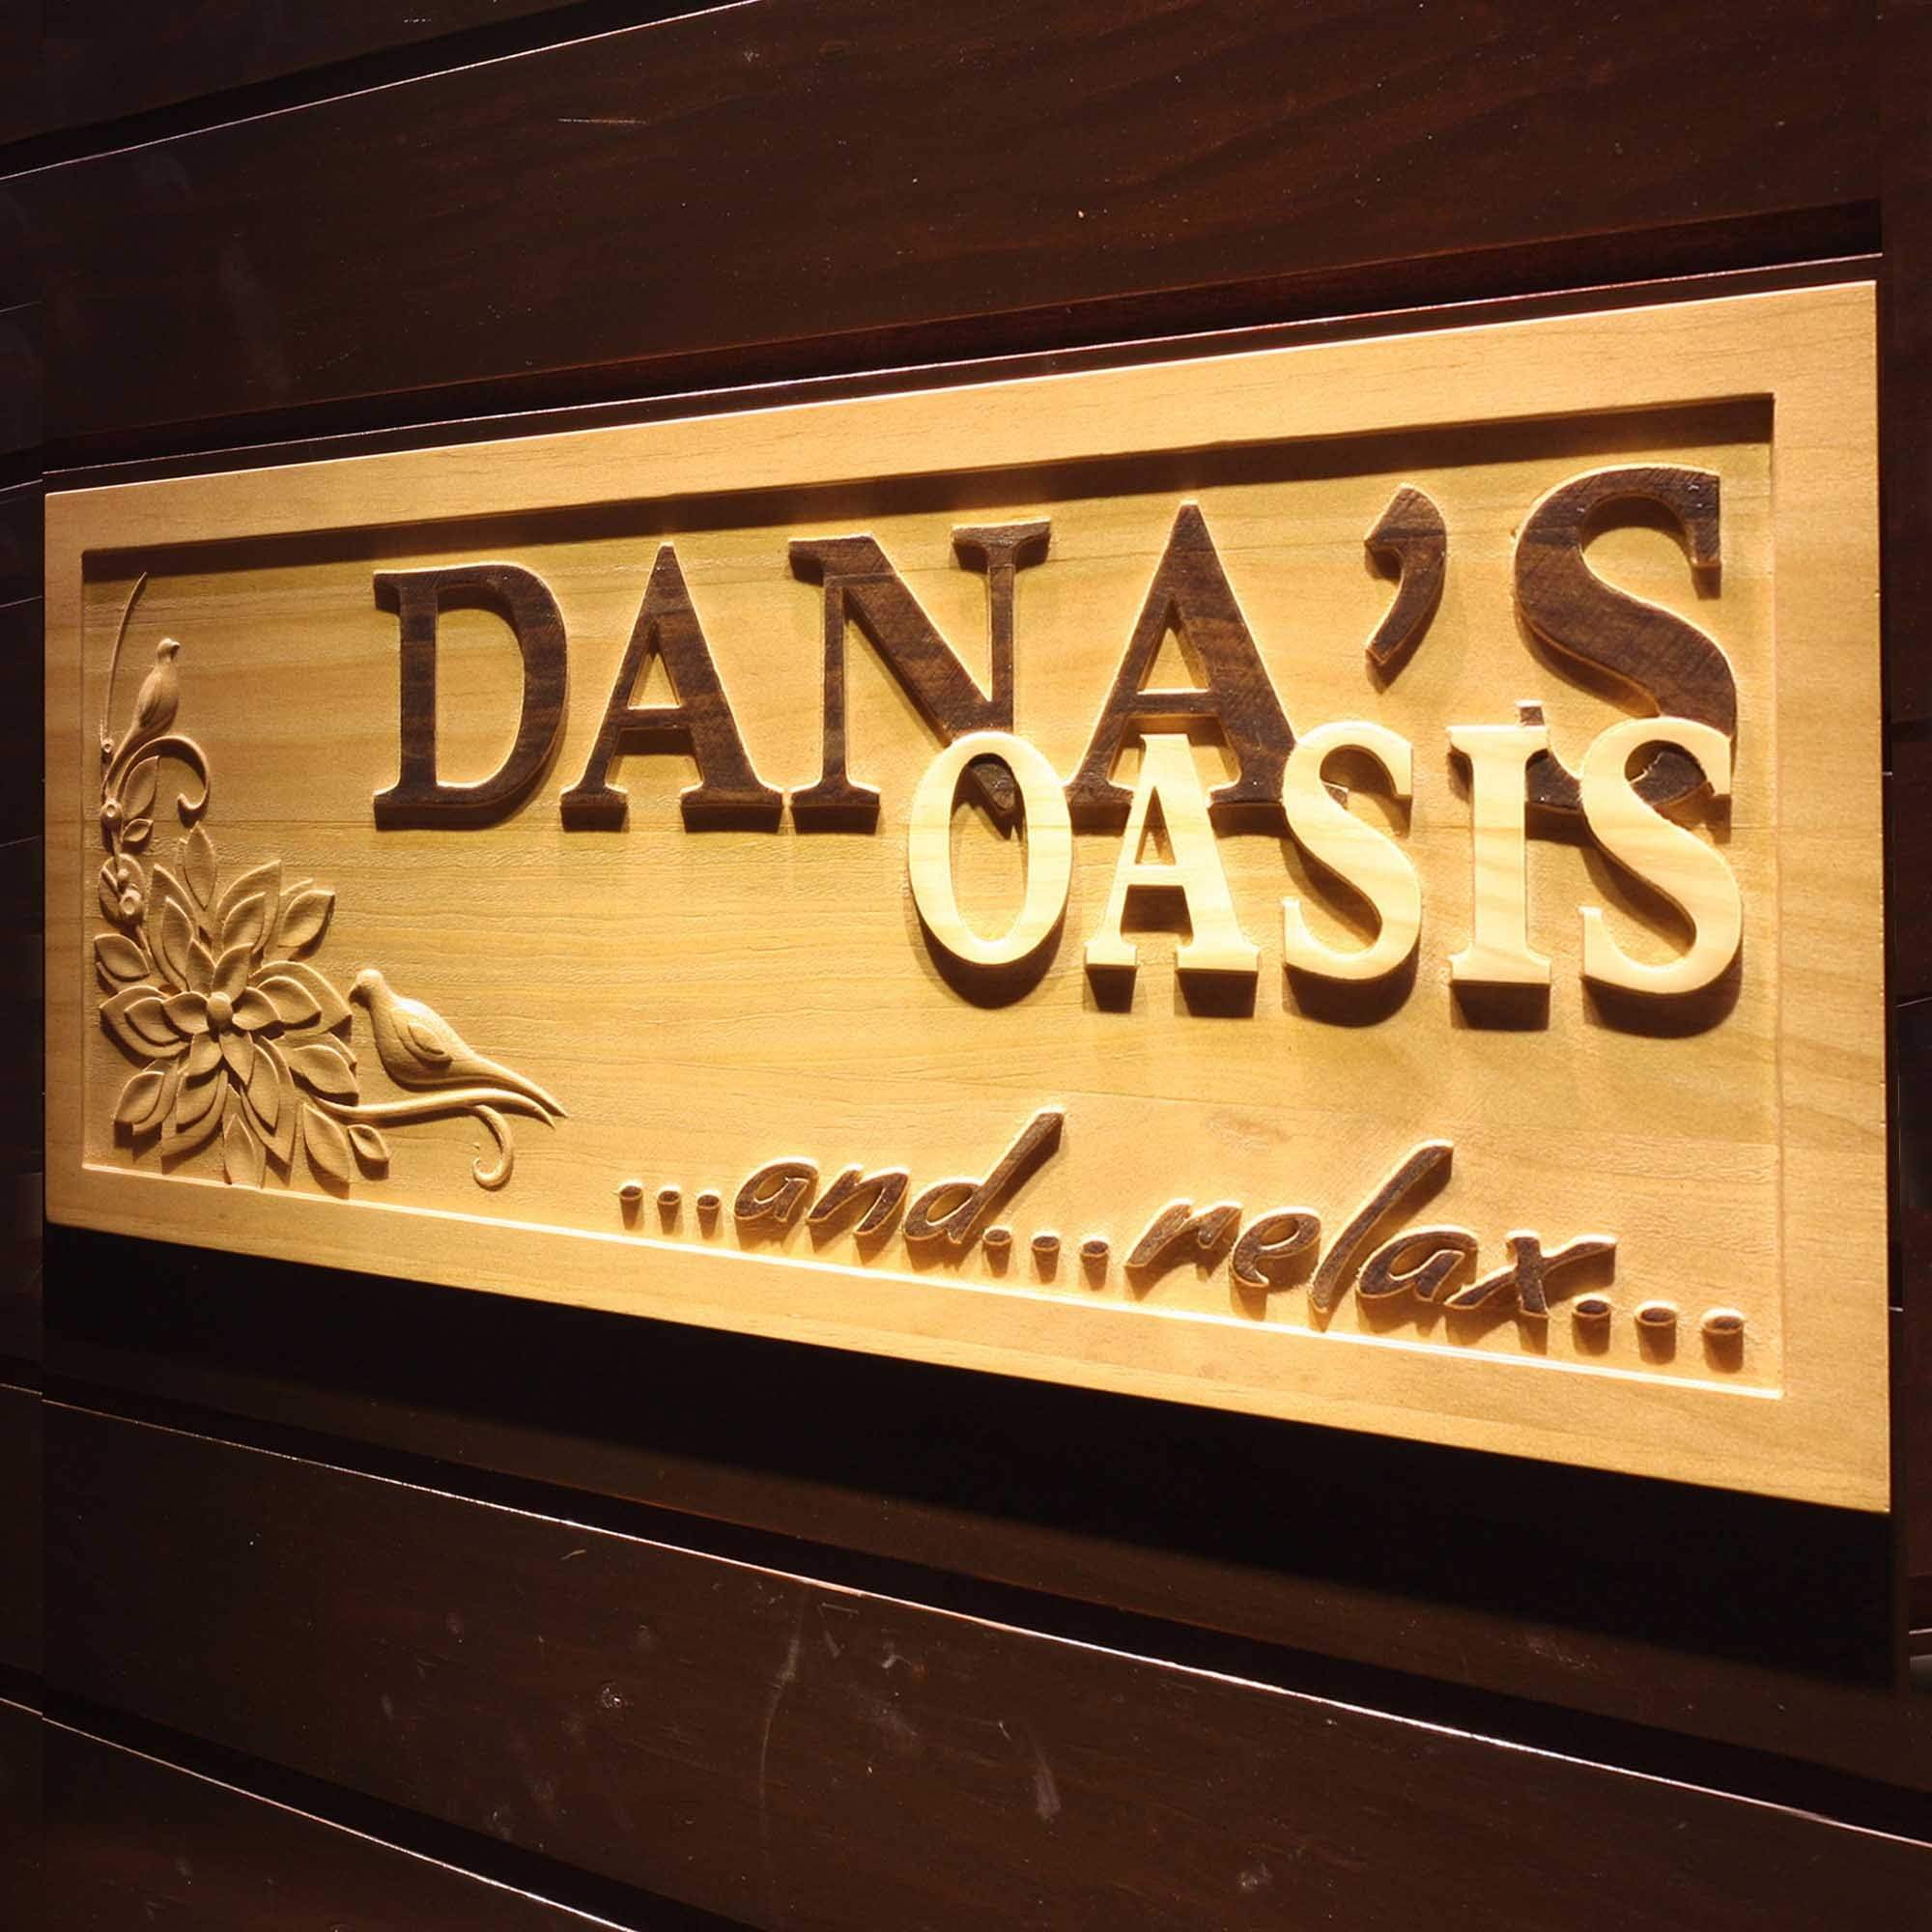 ADVPRO wpa0107 Name Personalized Oasis and Relax Bar Spa Room Décor Woman Room 3D Engraved Wooden Sign - Standard 23'' x 9.25''